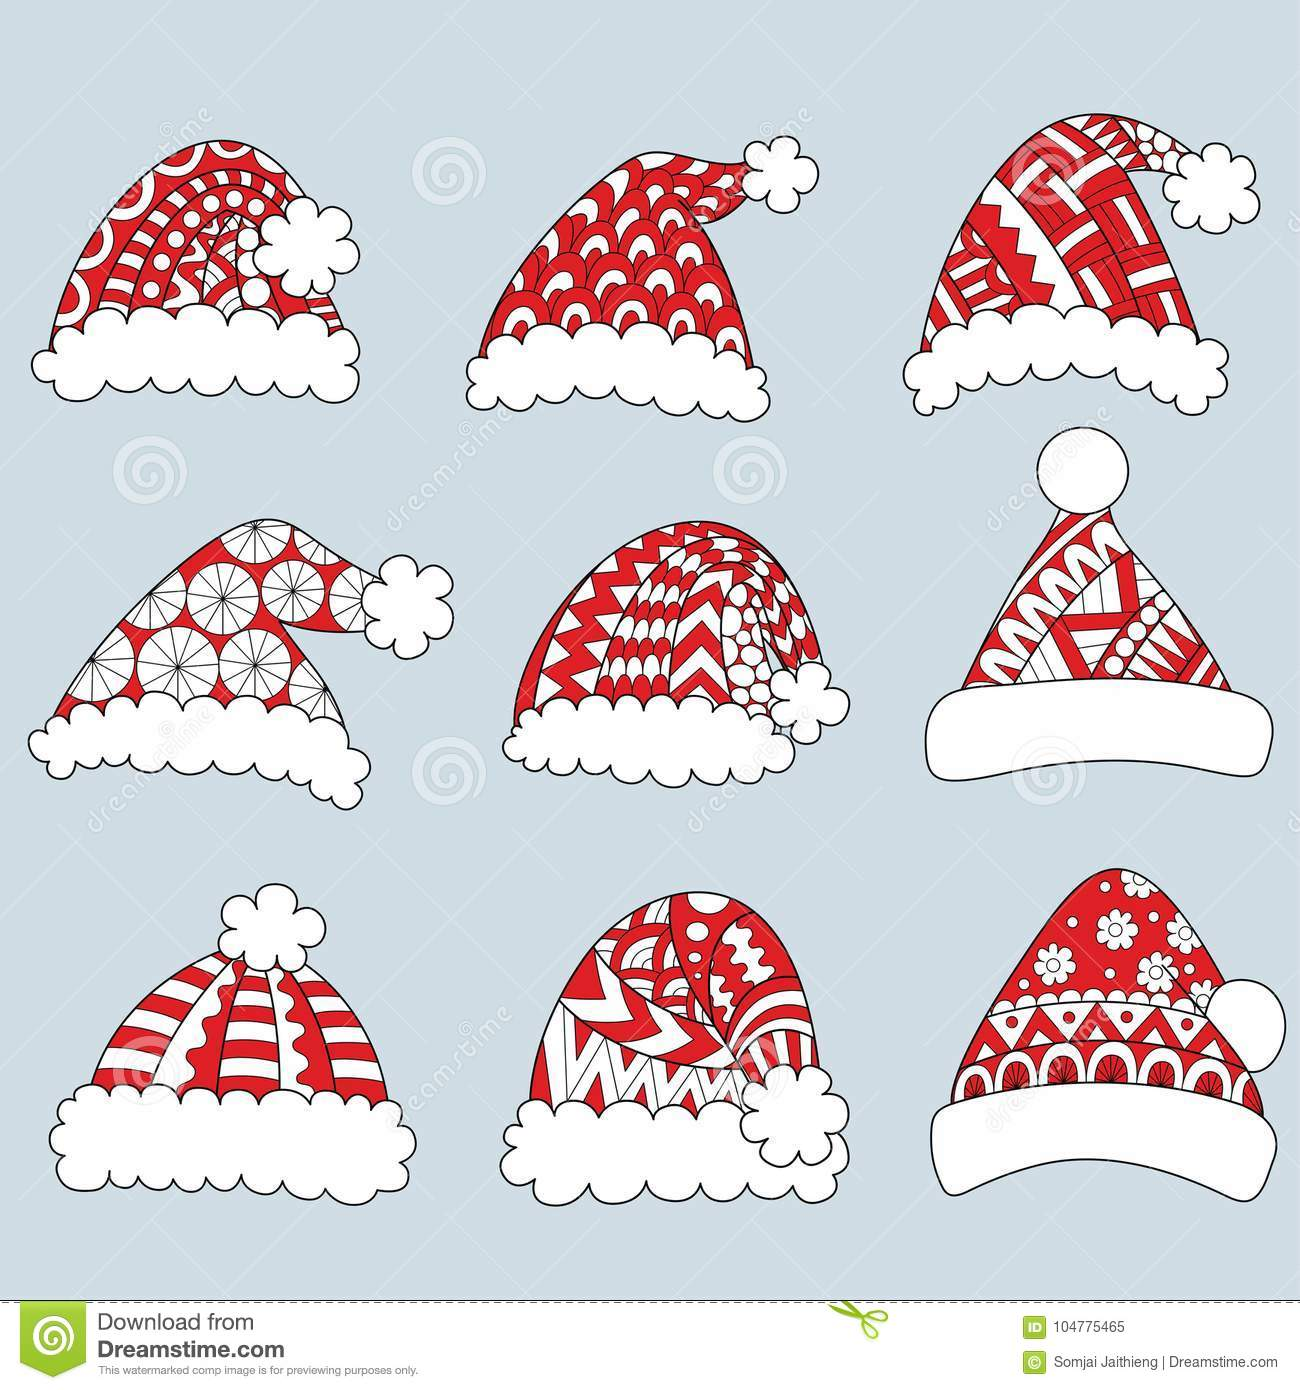 Coloring Santa Hats With Set Of Red On White Background For Design Element And